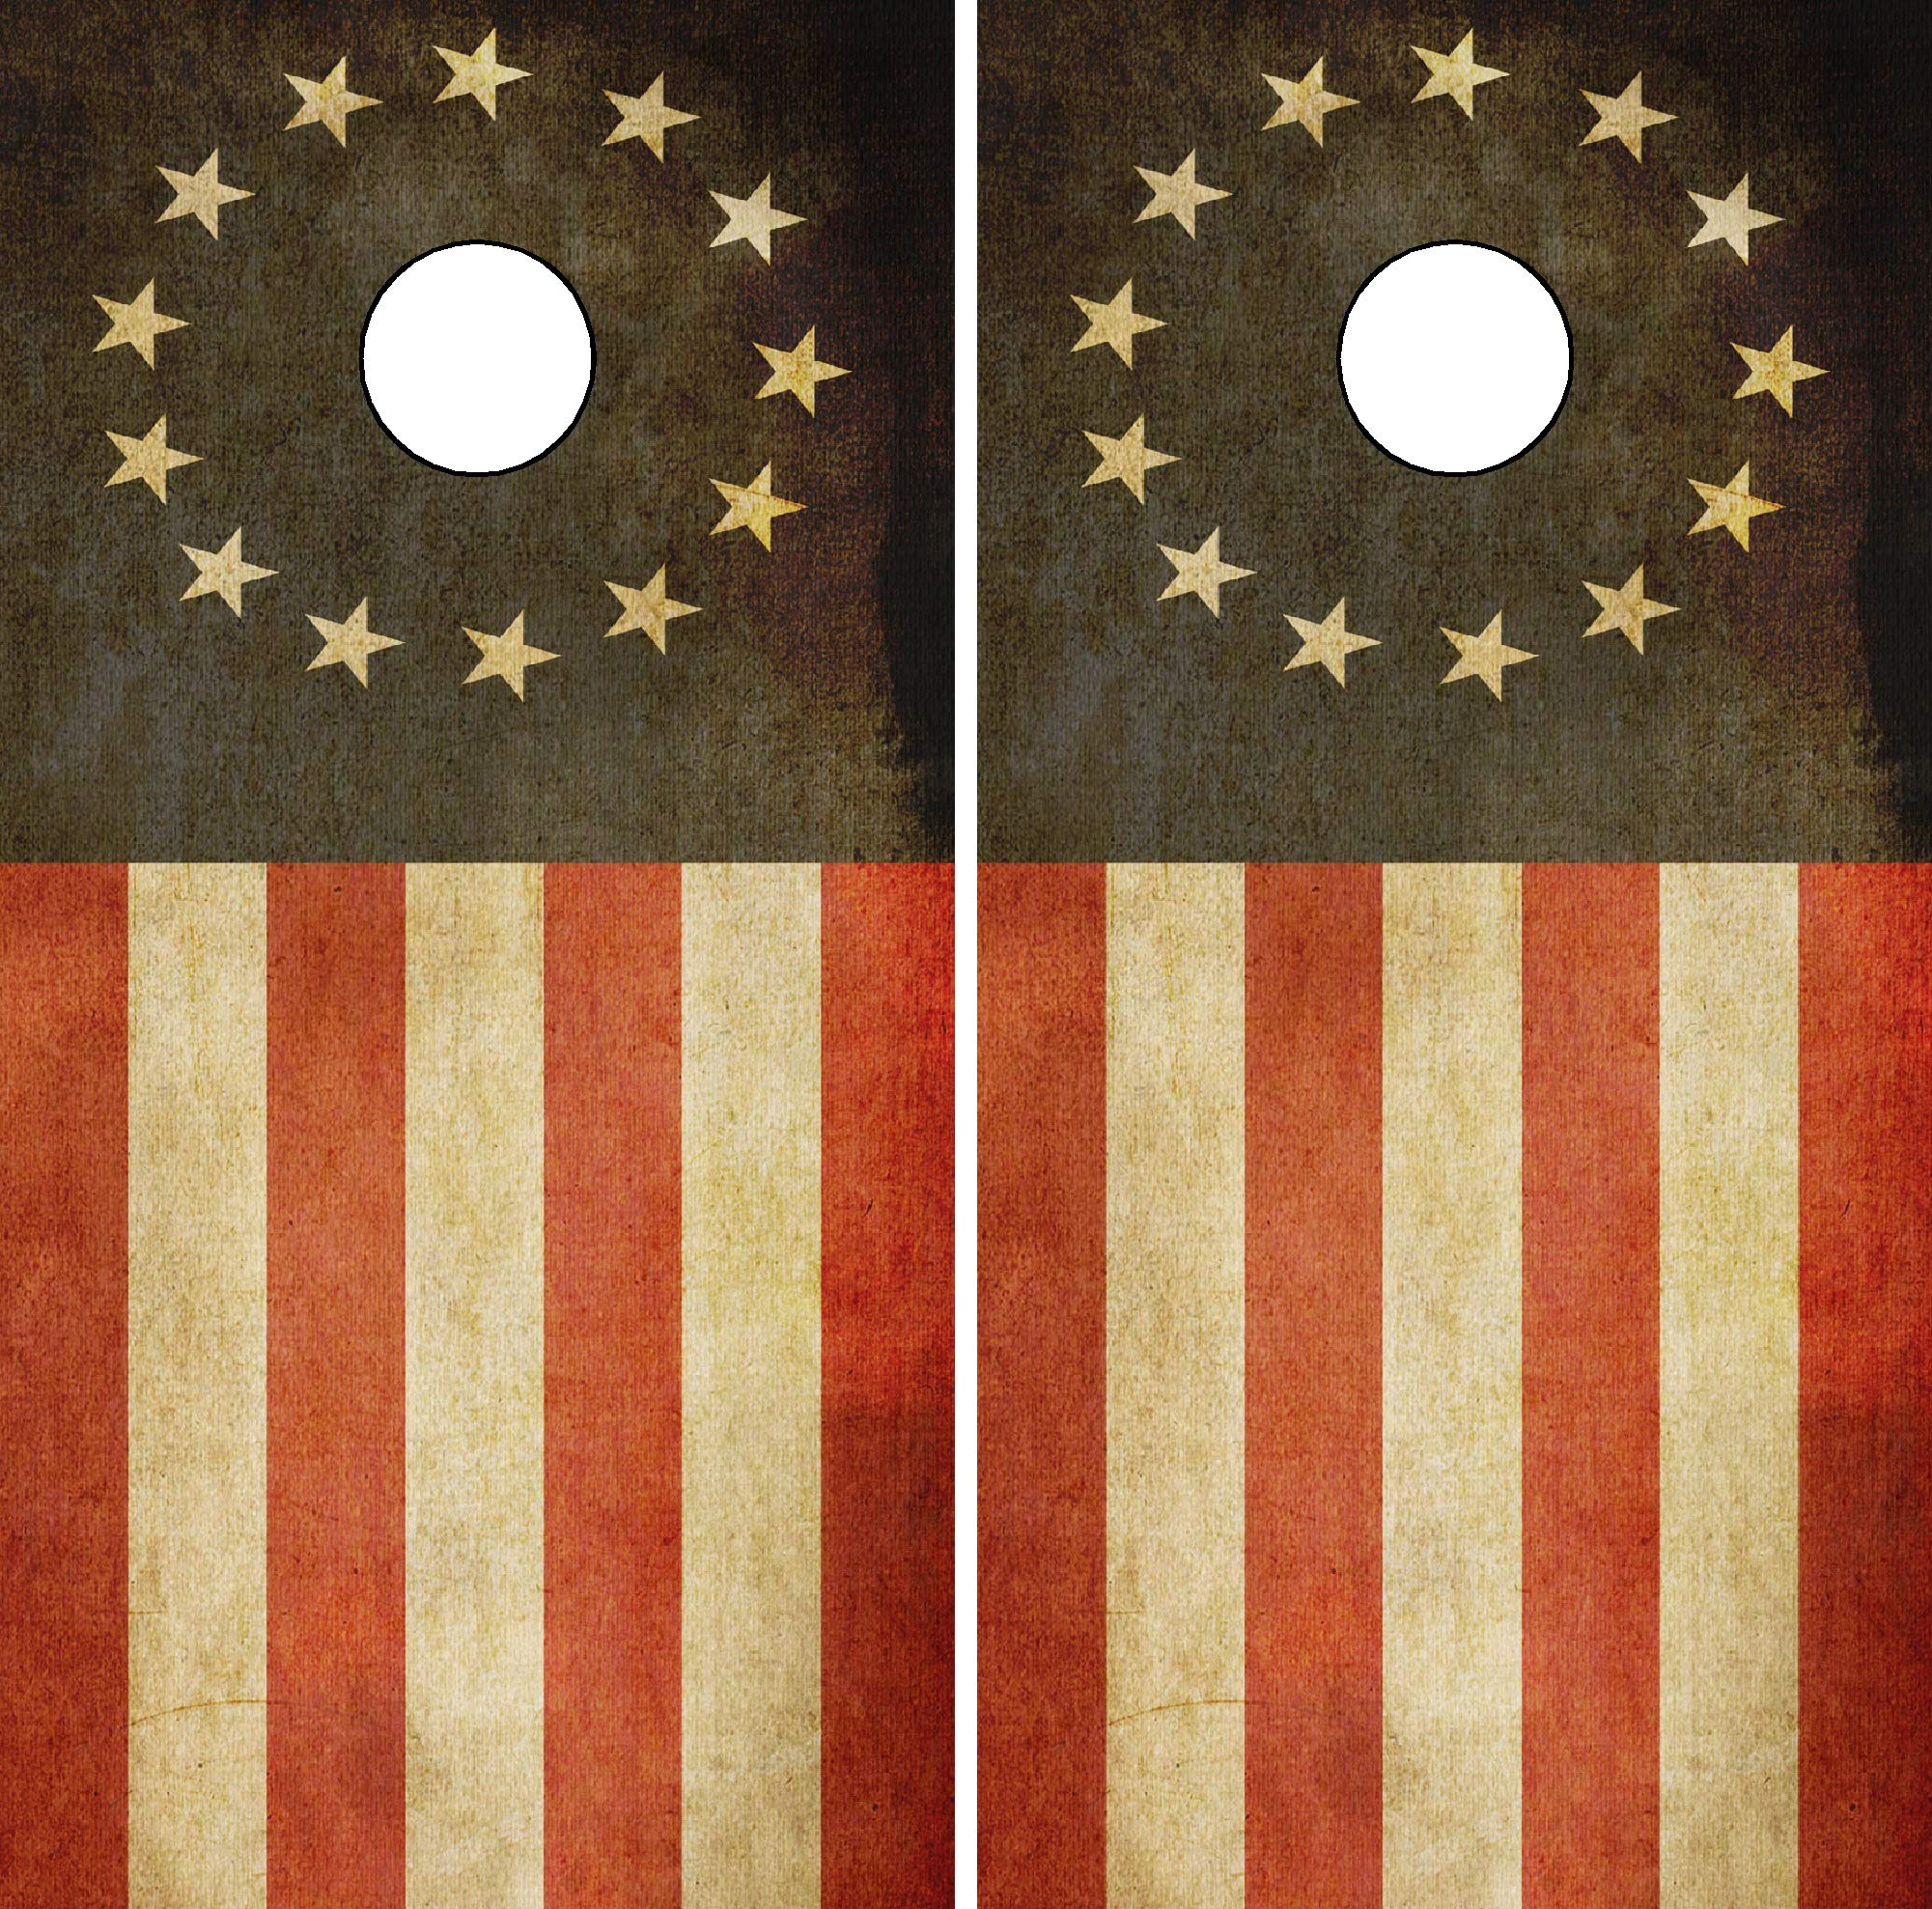 C290 Betsy Ross Distressed American Flag Cornhole WRAP Wraps Laminated Board Boards Decal Set Decals Vinyl Sticker Stickers Bean Bag Game Vinyl Graphic Tint Image by Cornhole Board Wrap